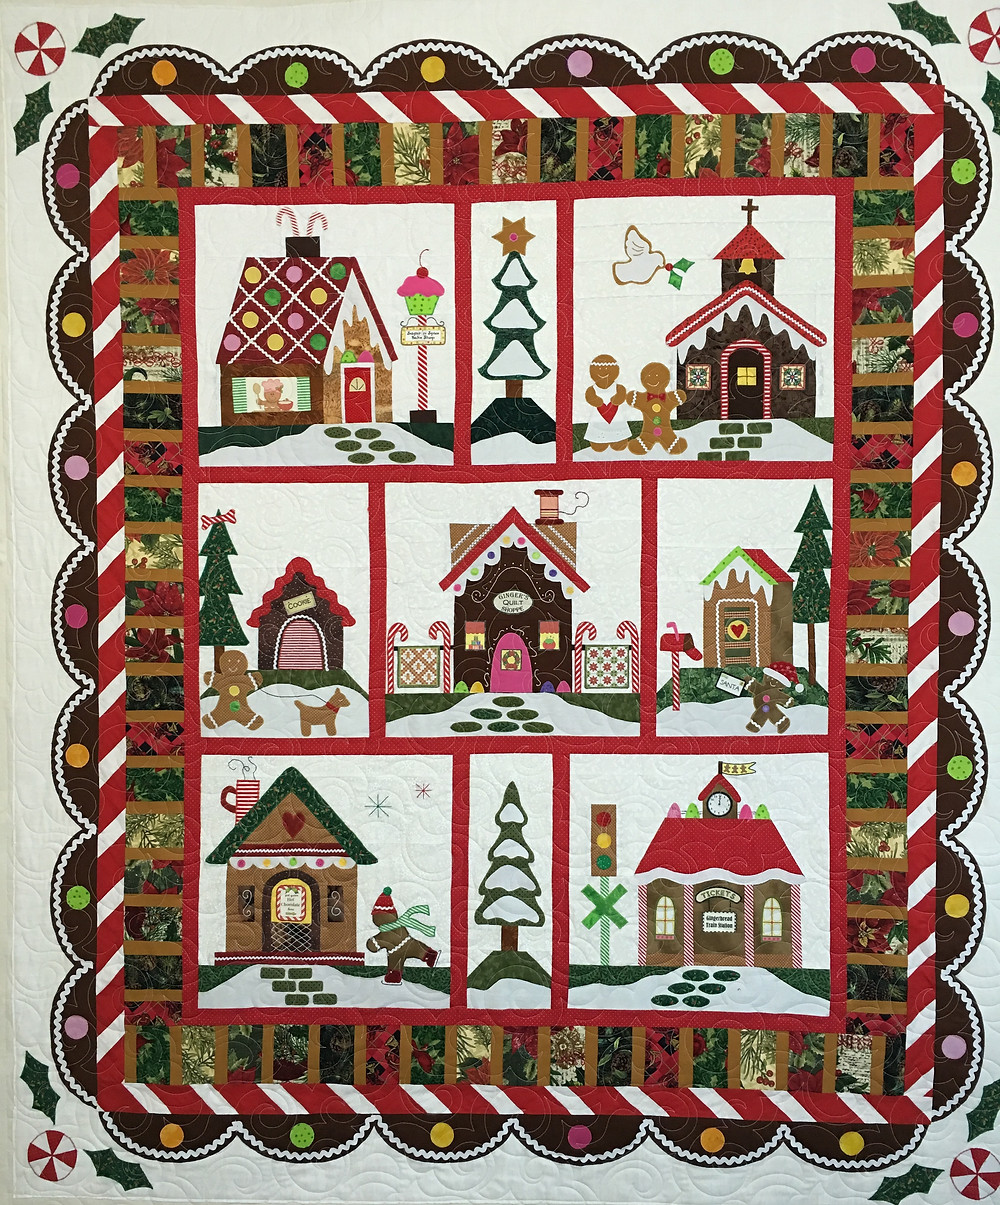 Gingerbread Village Quilt by Liz Zoch